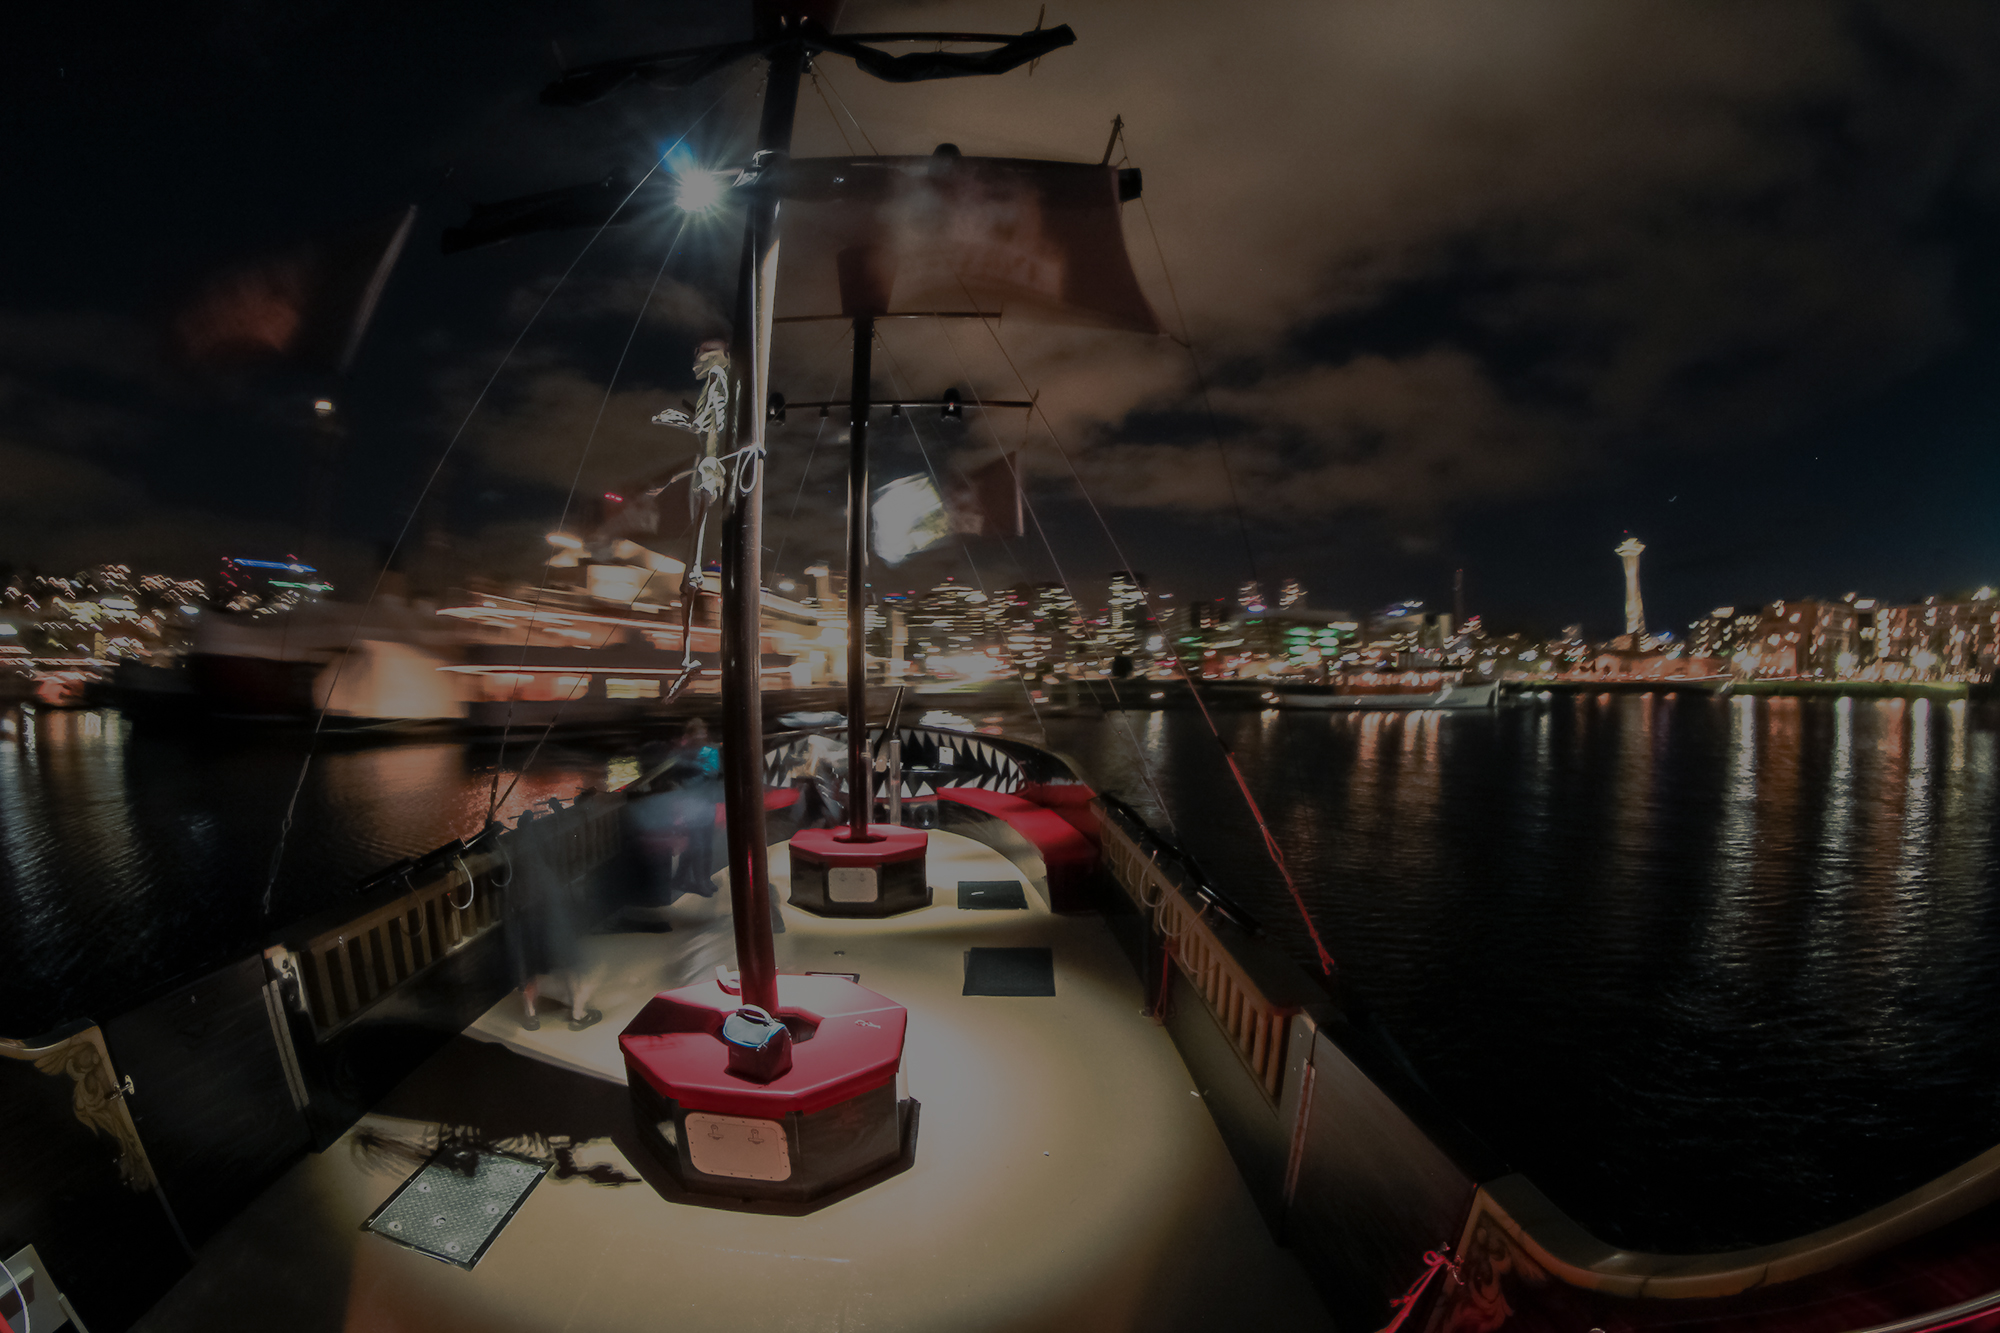 Pirate Ship at night on Lake Union in Seattle